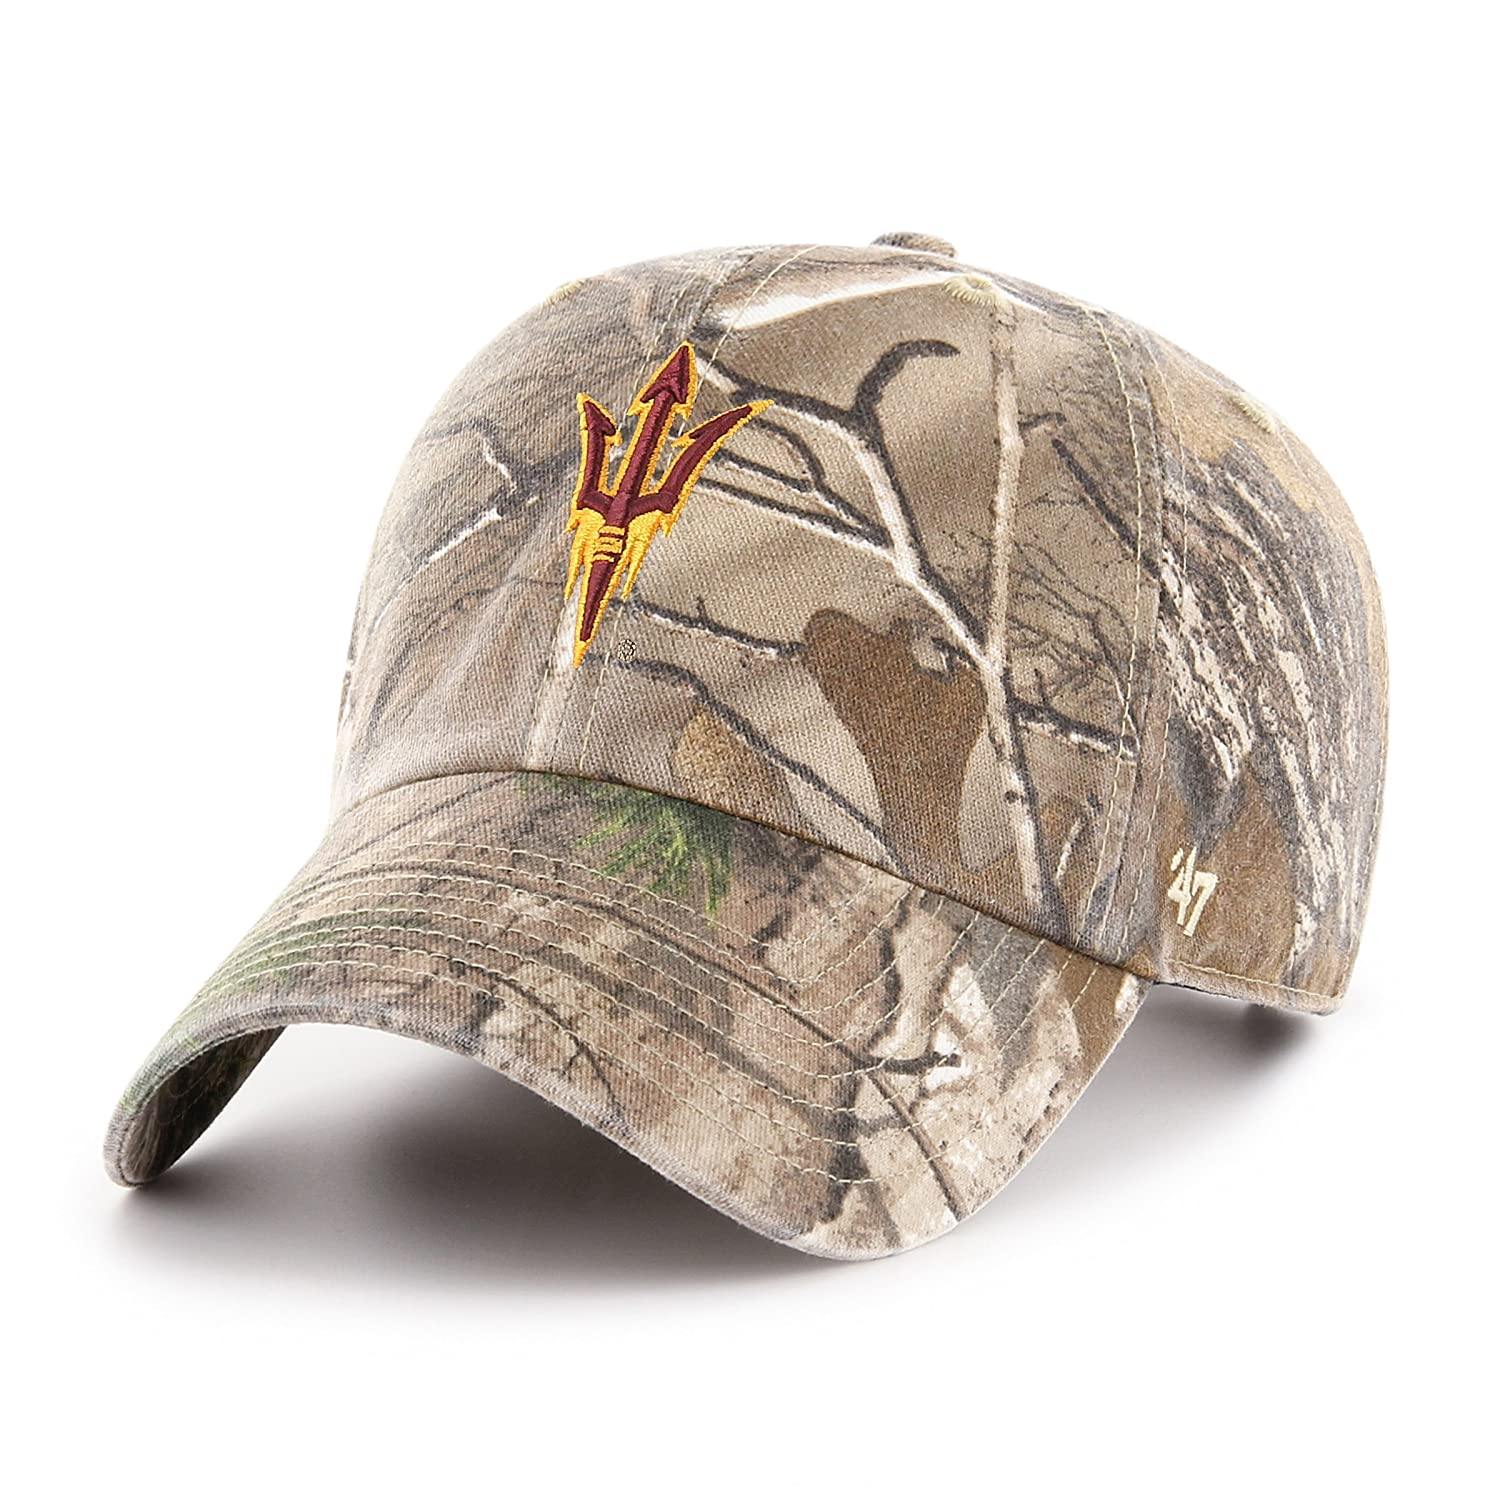 68ec595044aade Amazon.com : '47 NCAA Arizona State Sun Devils Adult Clean Up Realtree  Adjustable Hat, One Size, Realtree Camo : Sports & Outdoors